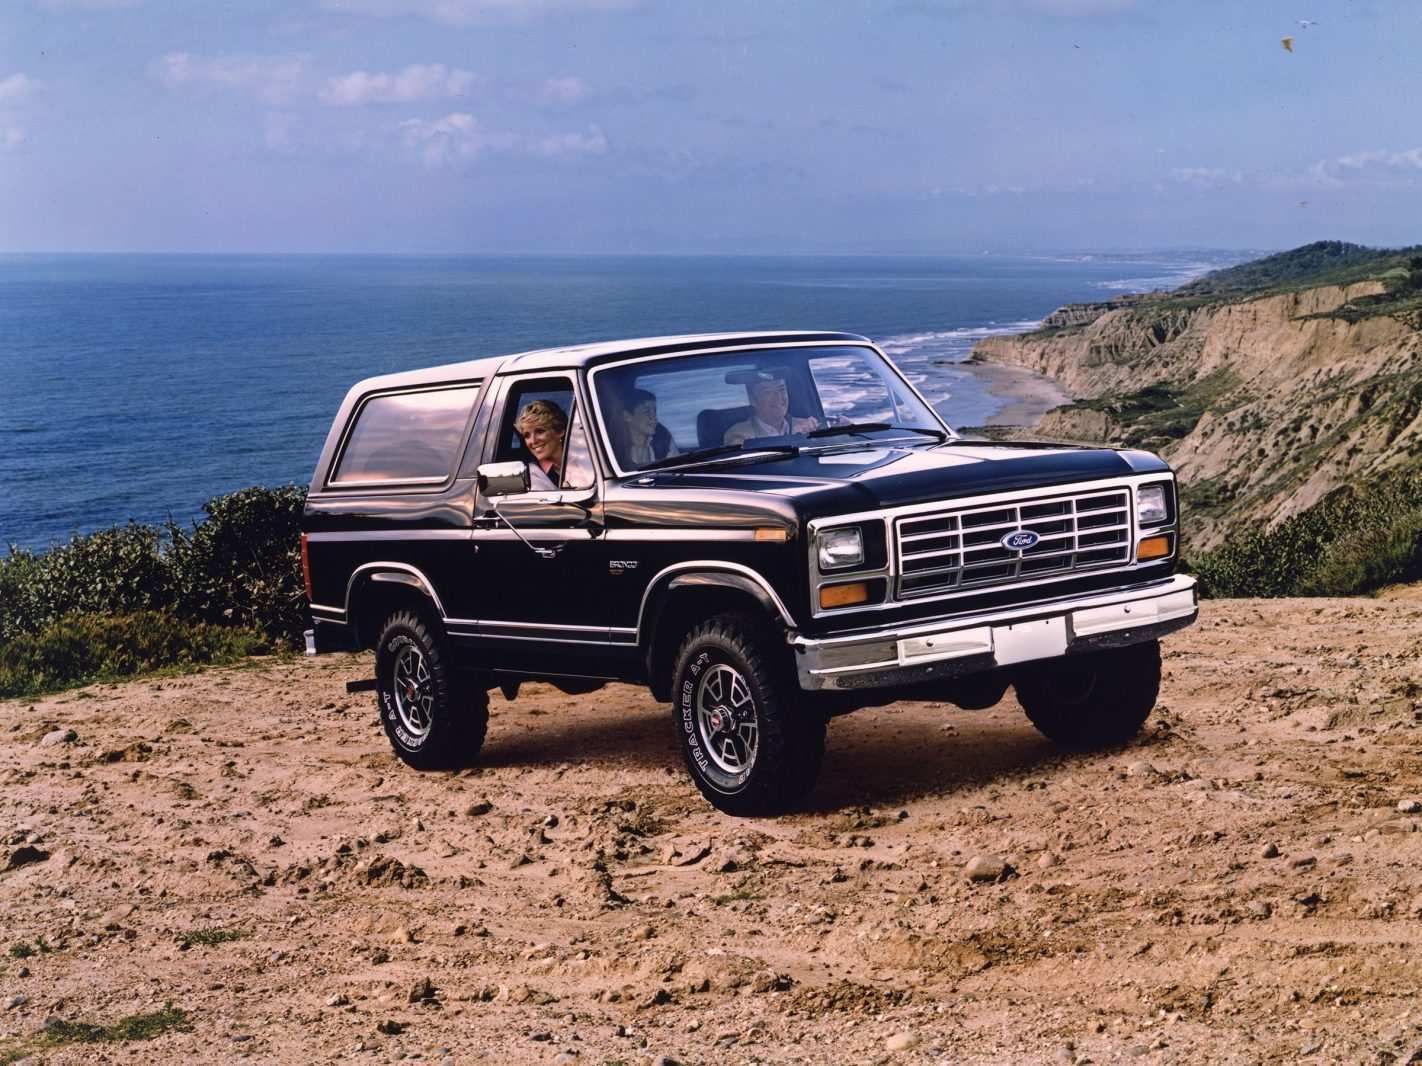 11 New 2020 Ford Bronco Wallpaper Price with 2020 Ford Bronco Wallpaper